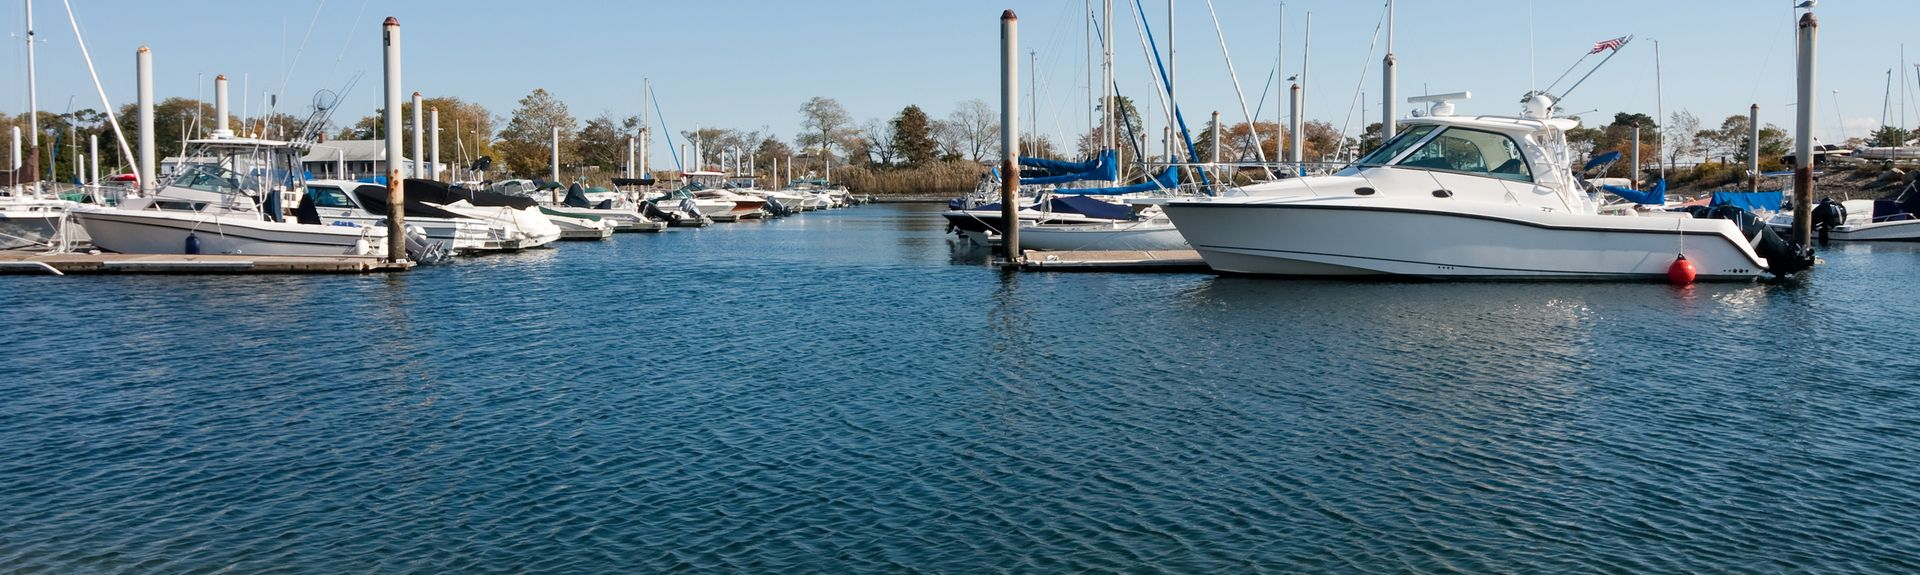 Westport, Connecticut, Estados Unidos